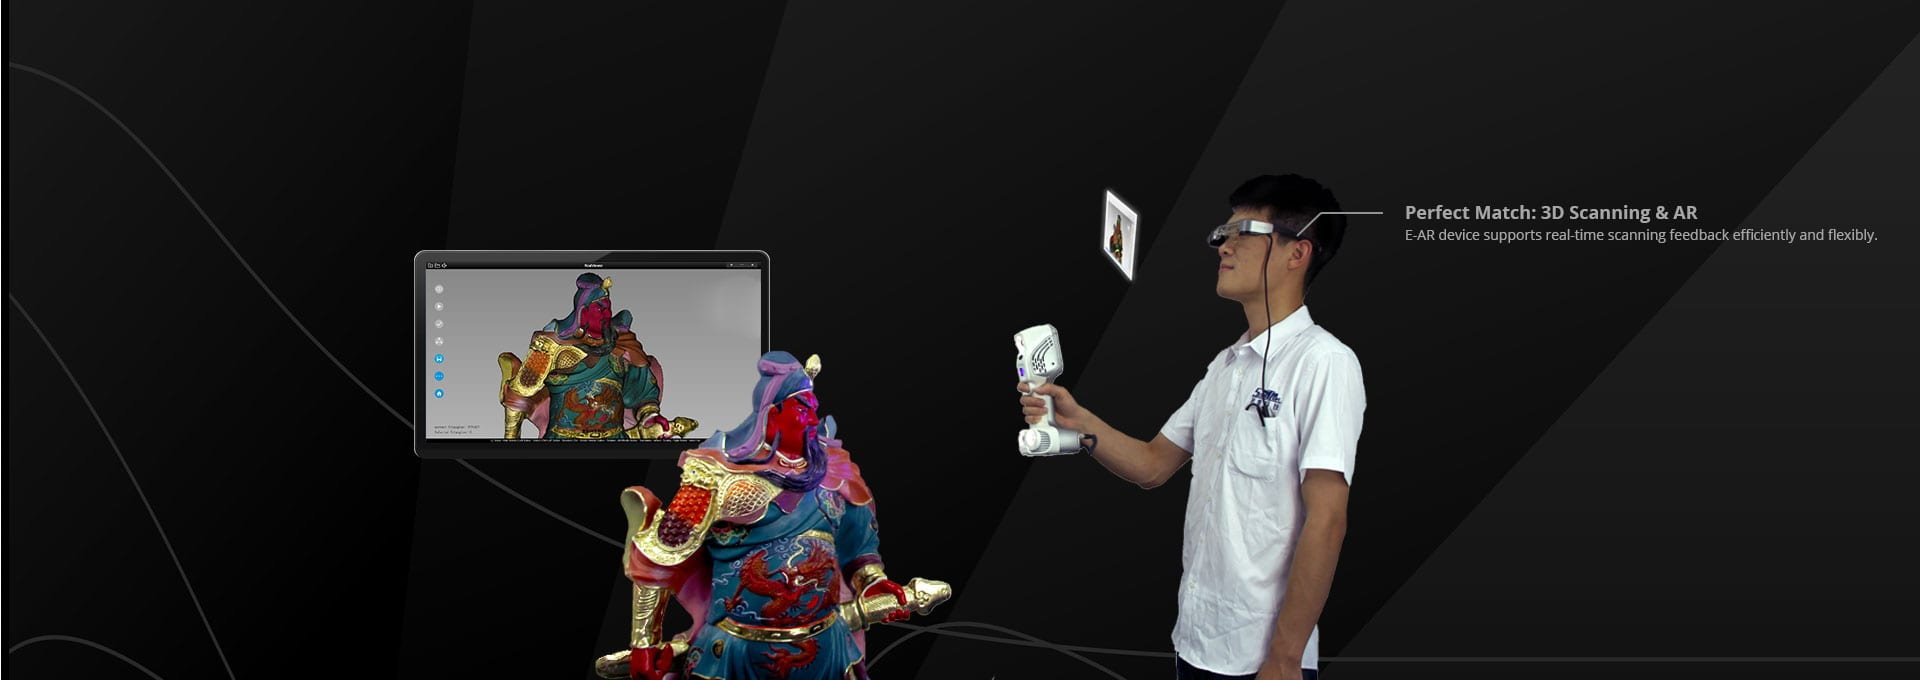 iReal 2E 3D Scanner